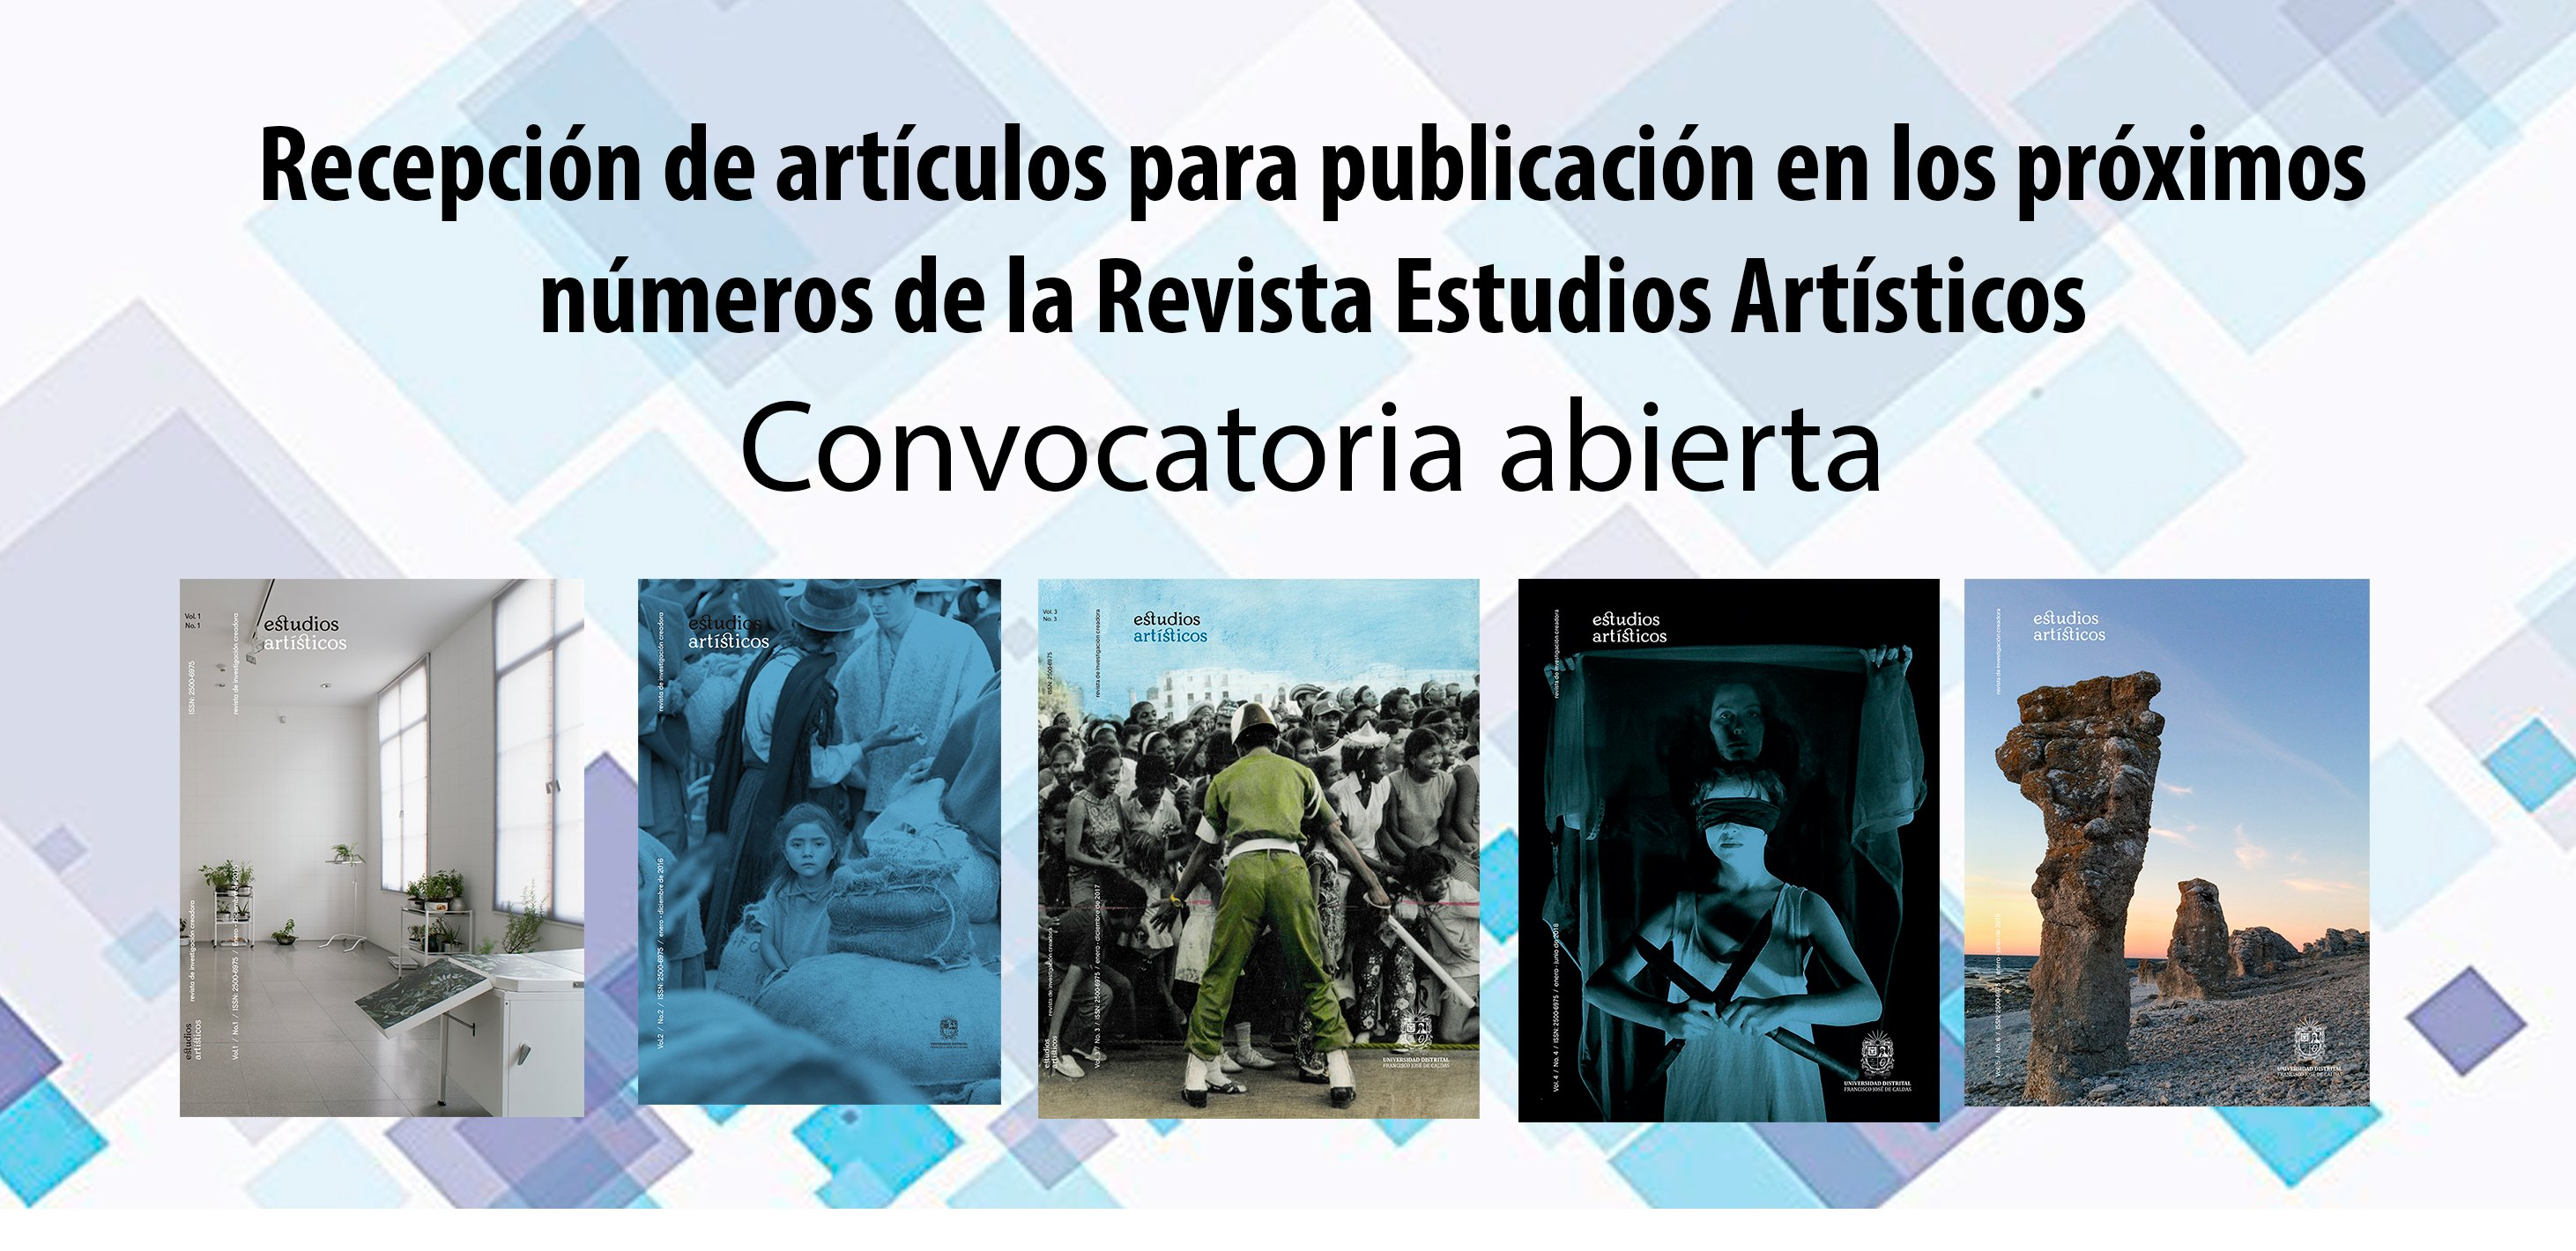 Convocatoria abierta: Consulta el siguiente link para informes y especificaciones: https://revistas.udistrital.edu.co/index.php/estart/about/submissions#onlineSubmissions